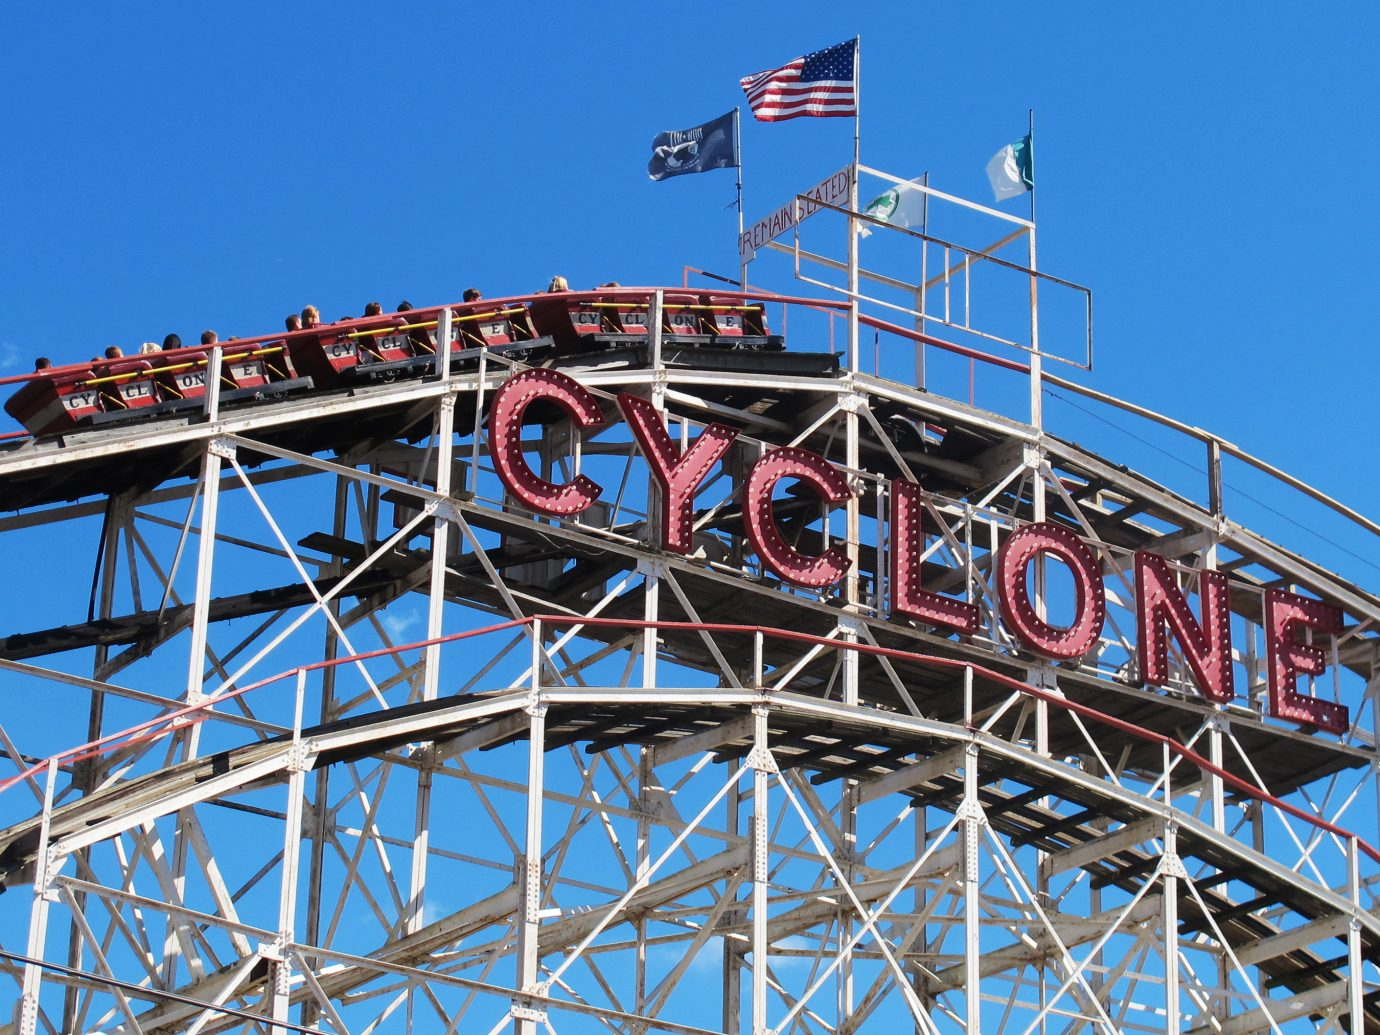 the Cyclone wooden rollercoaster